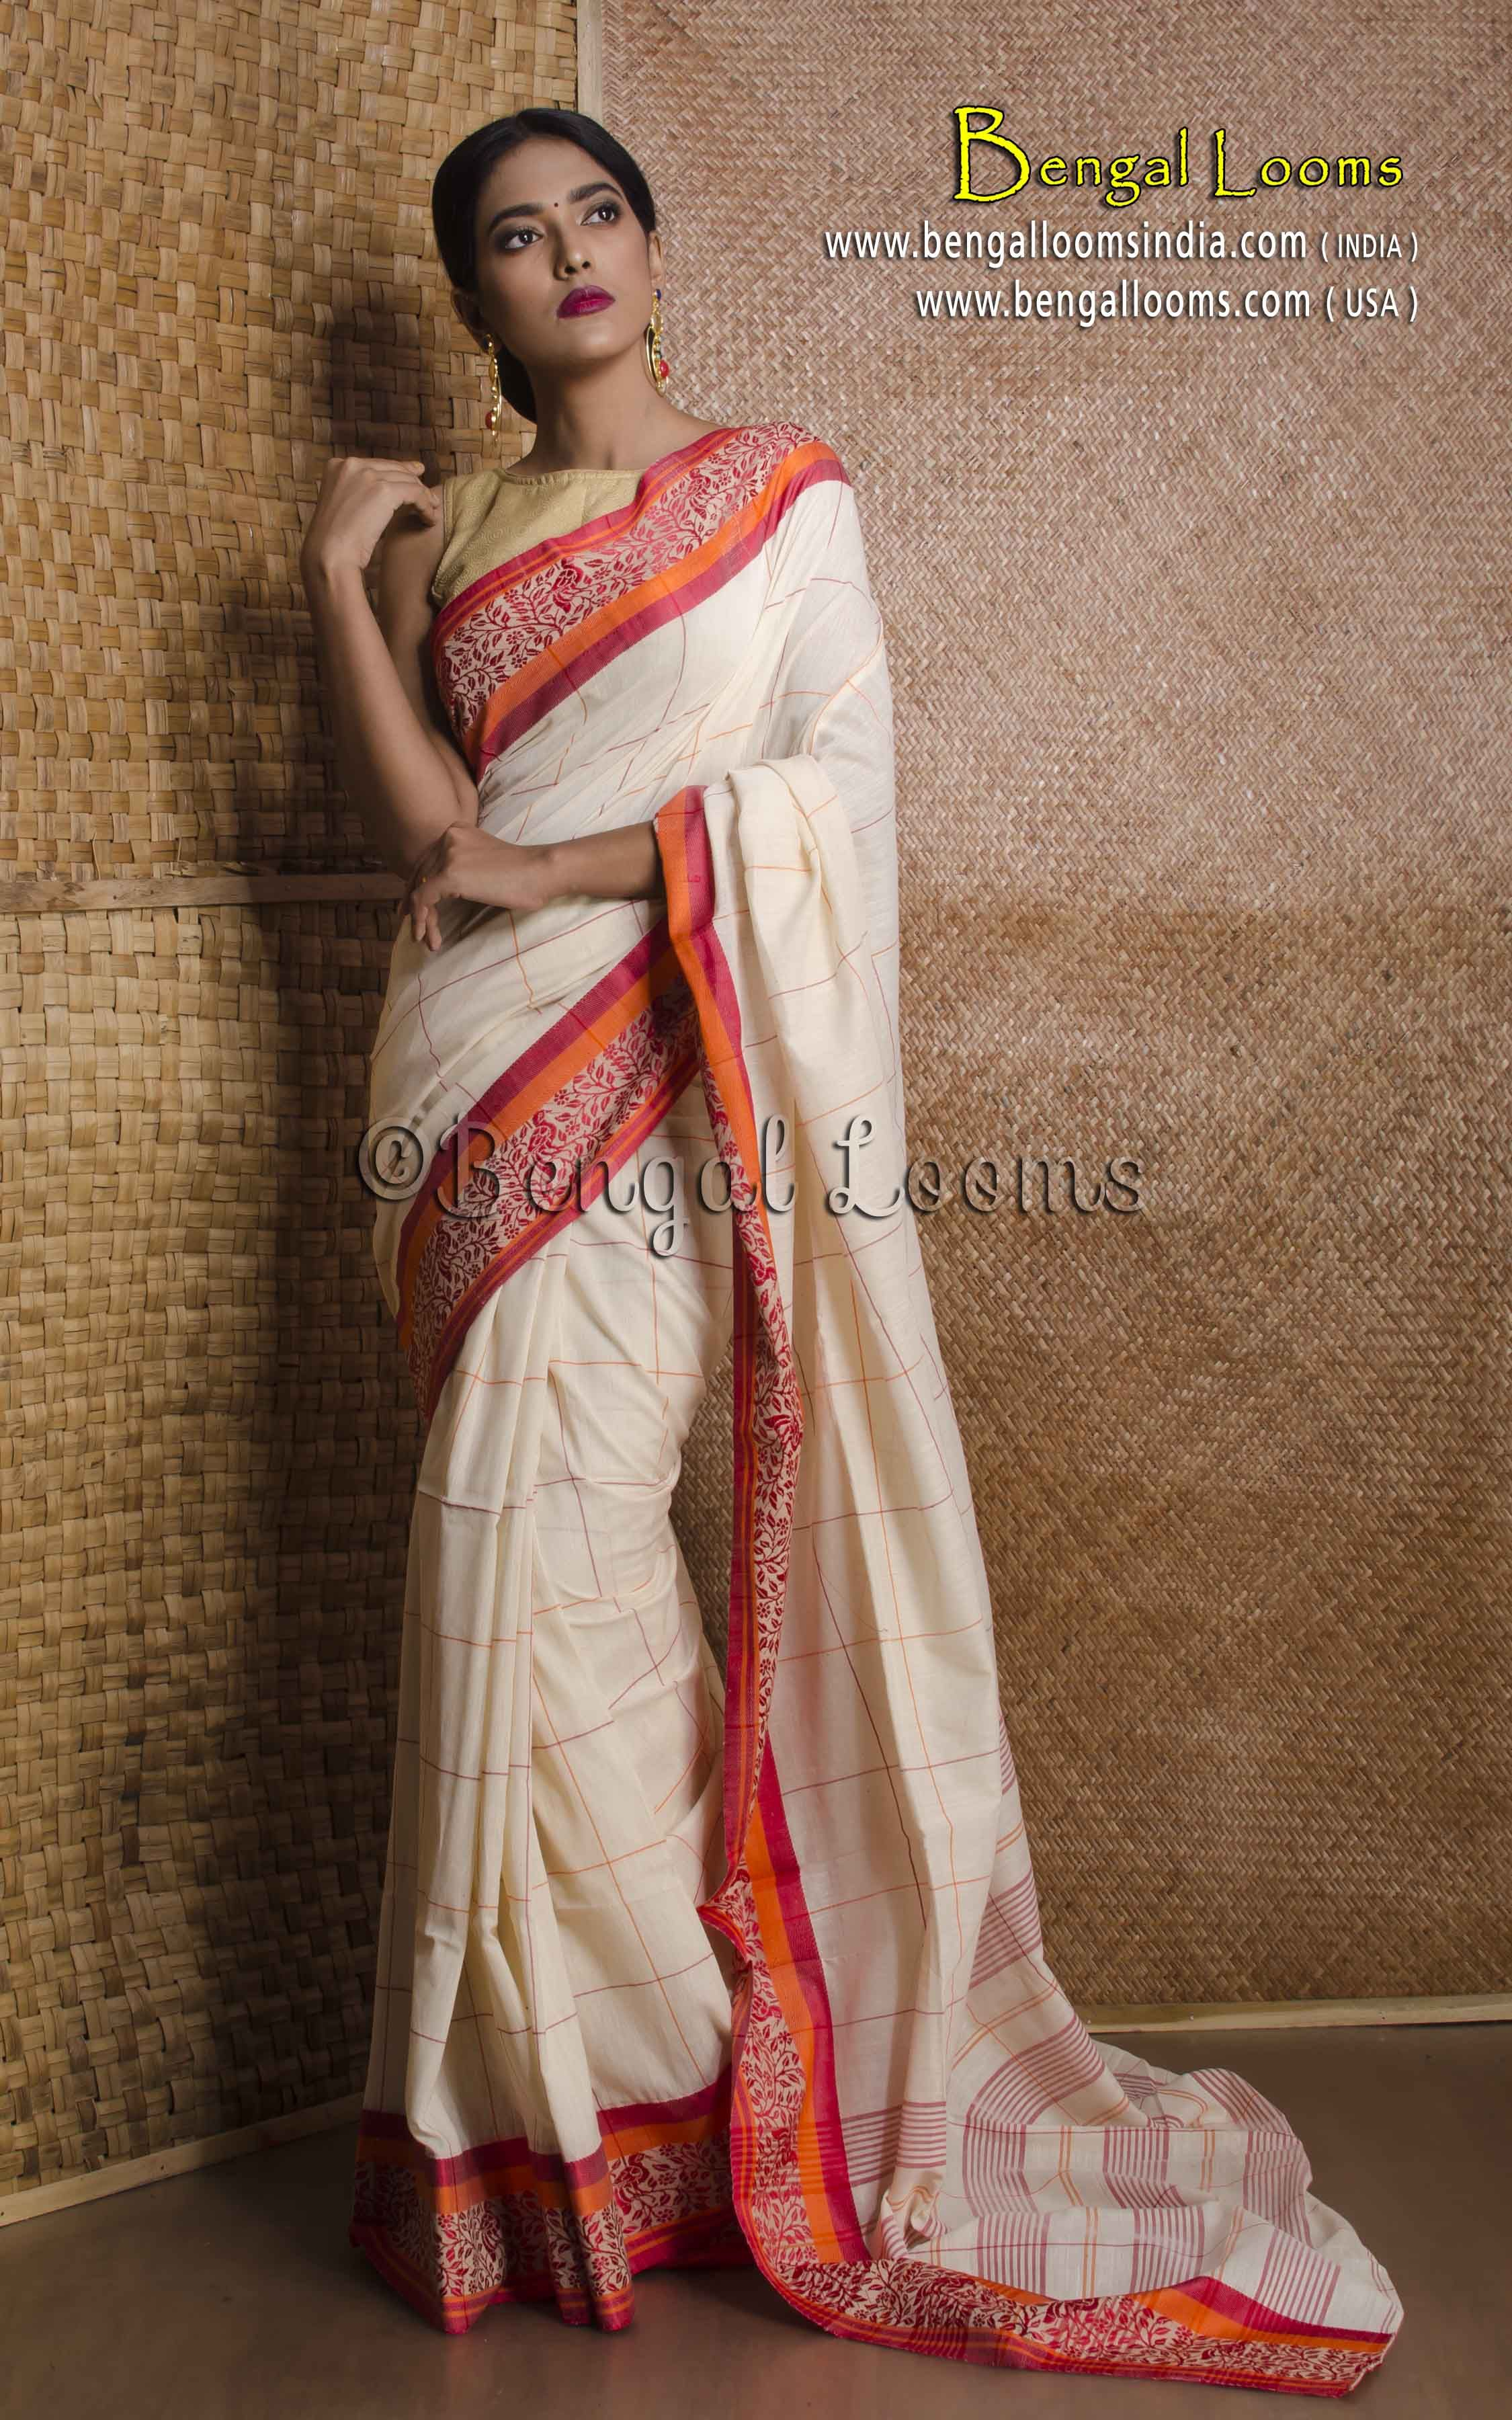 d283e6dde8 Pure Handloom Soft Cotton Saree with Naksha Border in Cream and Red ...